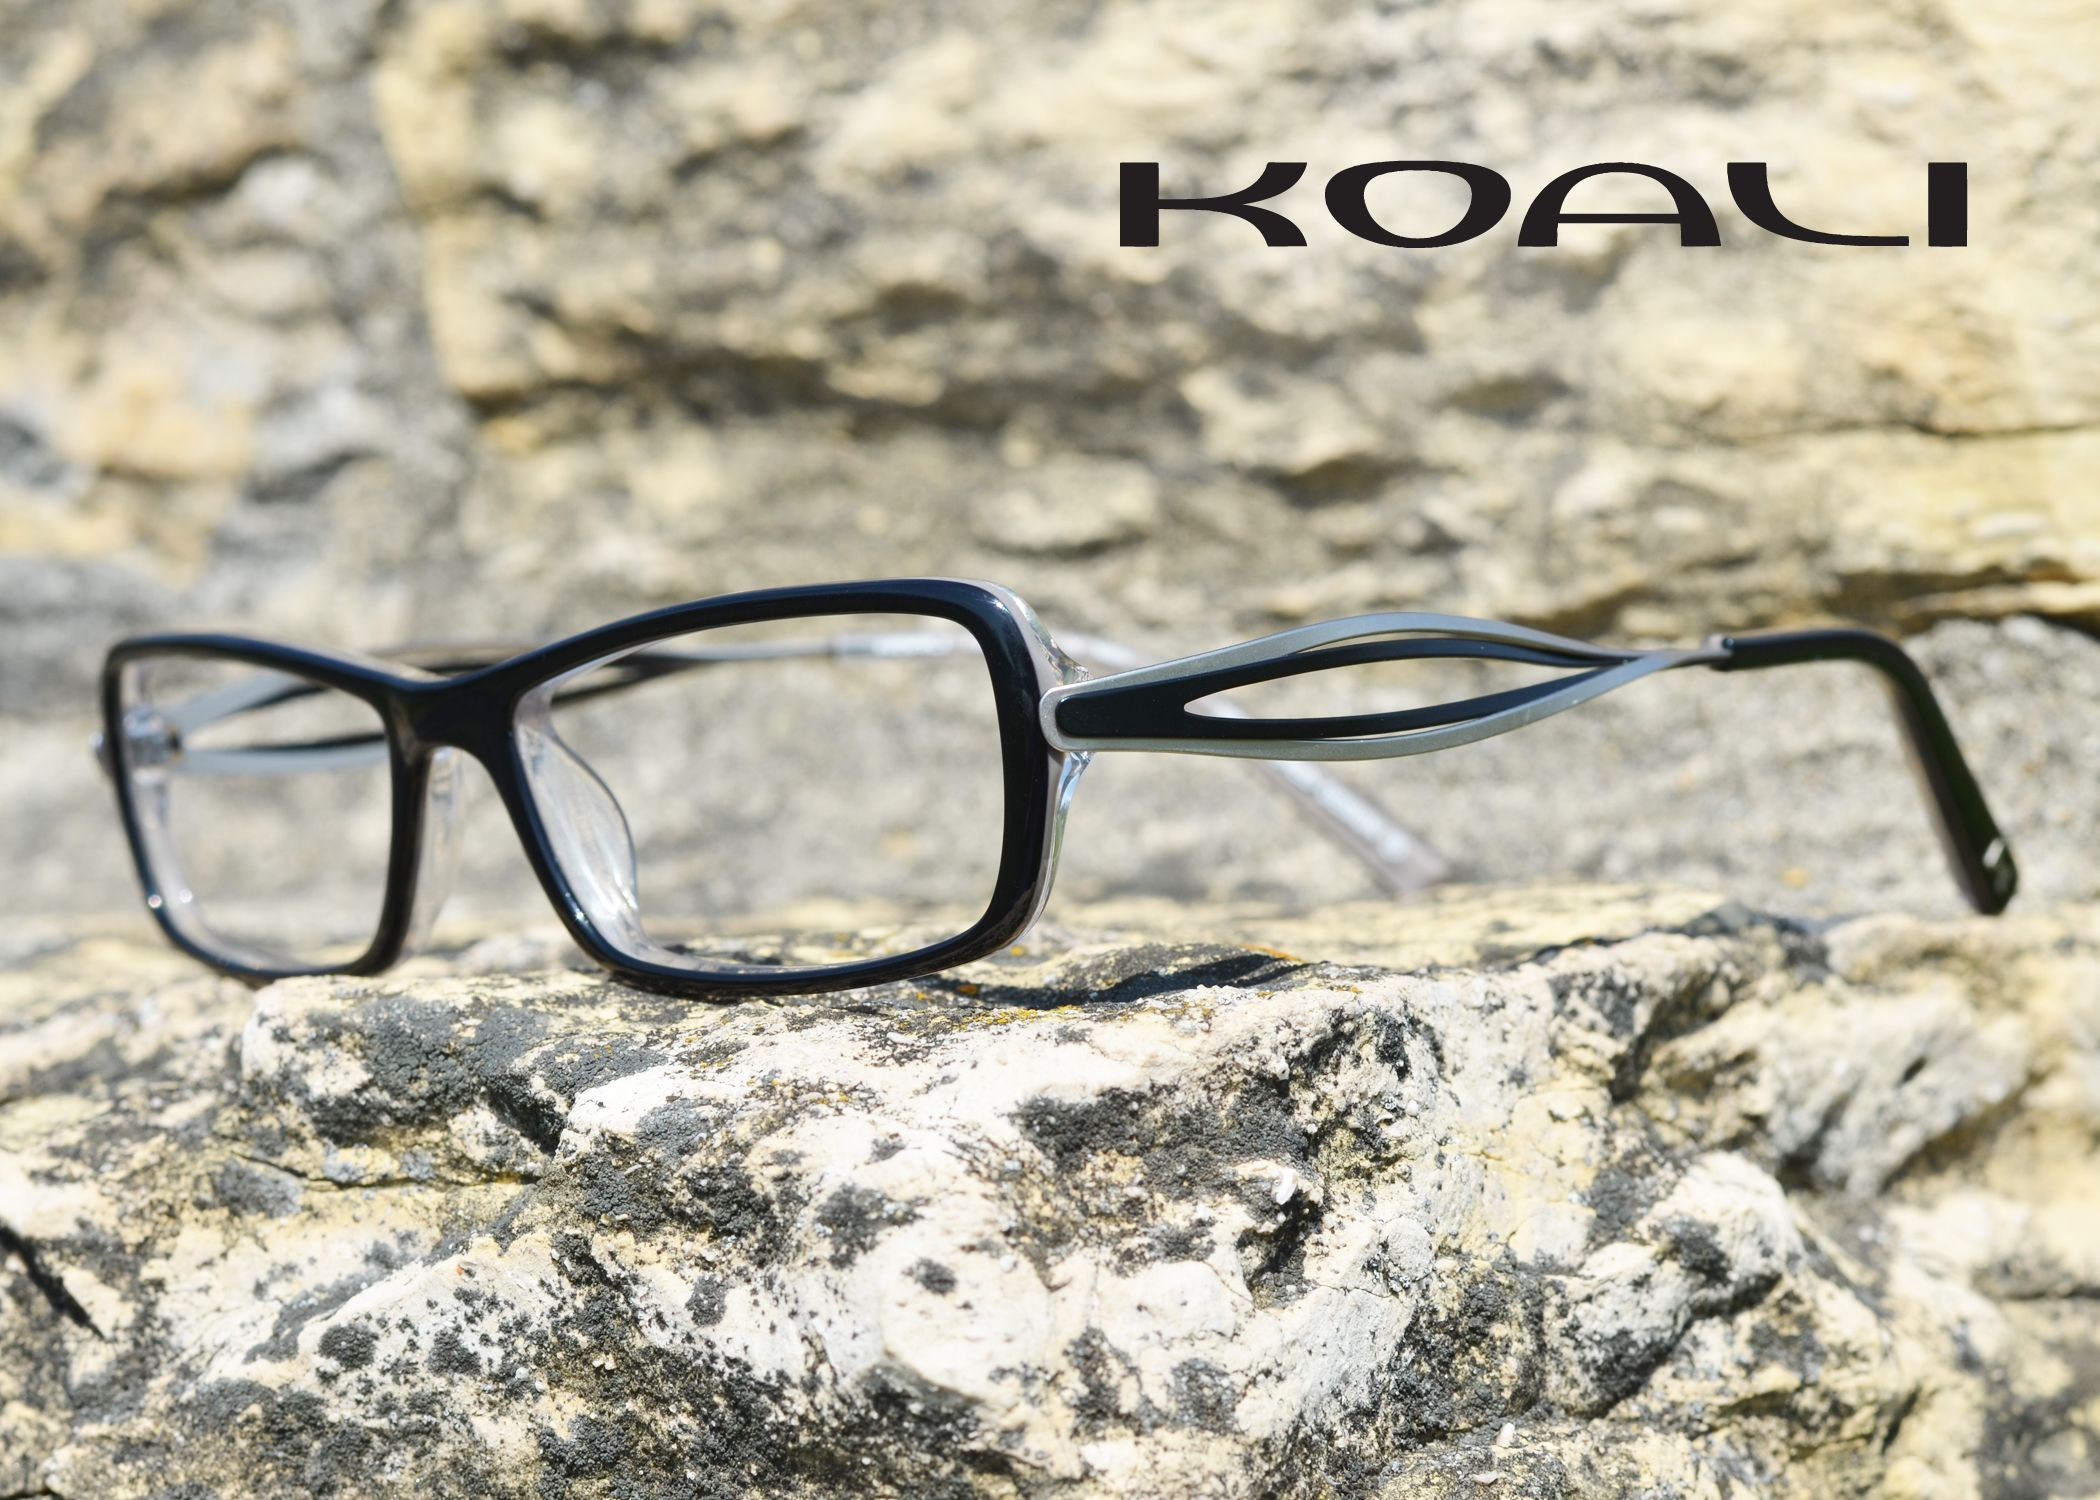 Twist it up with these cool temples! #koali #eyewear | Clothes ...